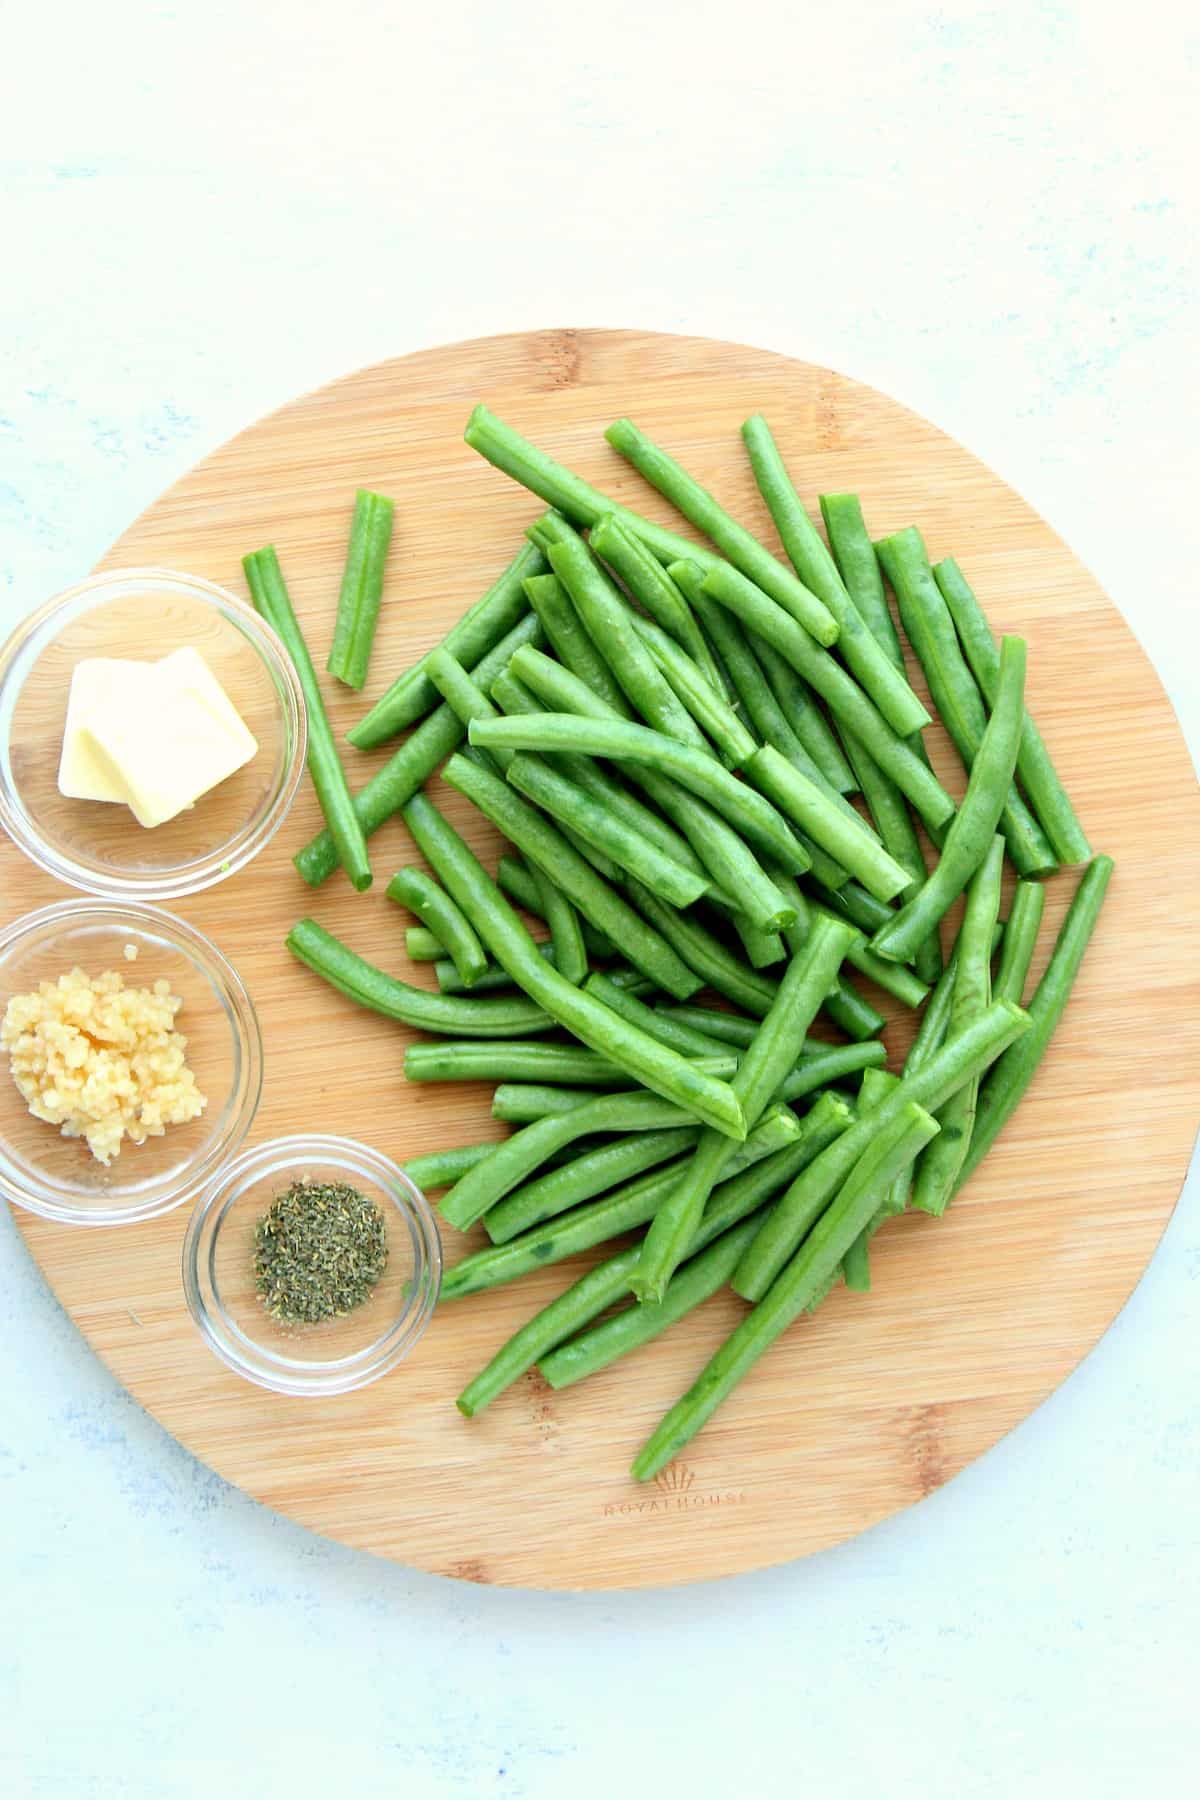 sauteed green beans ingredients Sauteed Green Beans